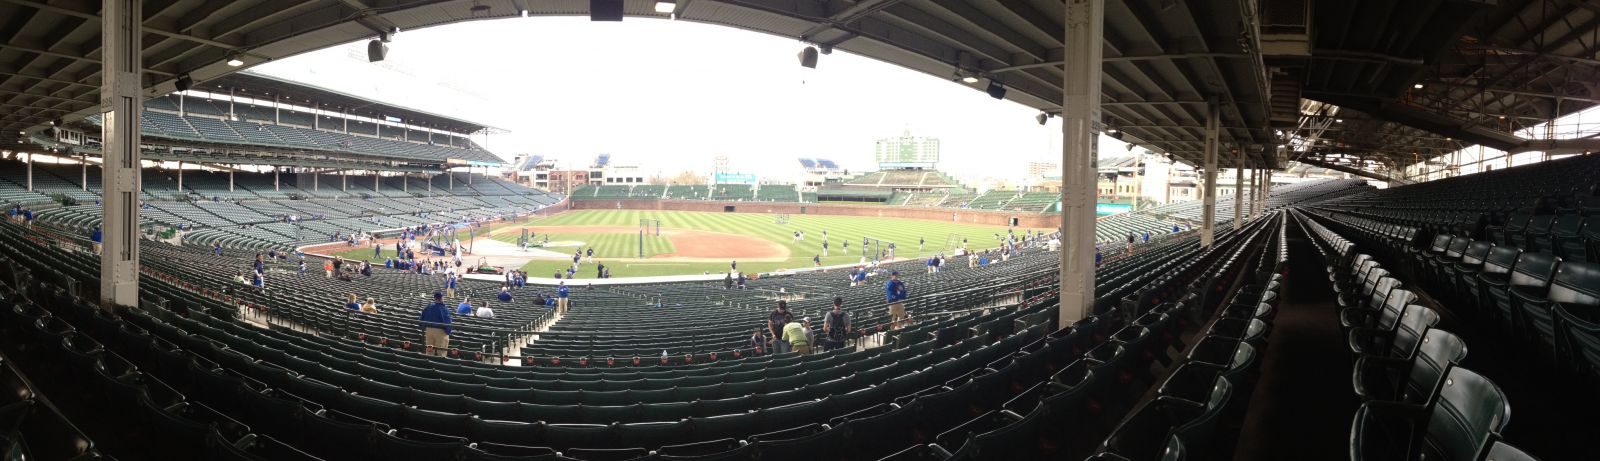 Seat View for Wrigley Field Section 223, Row 10, Seat 112